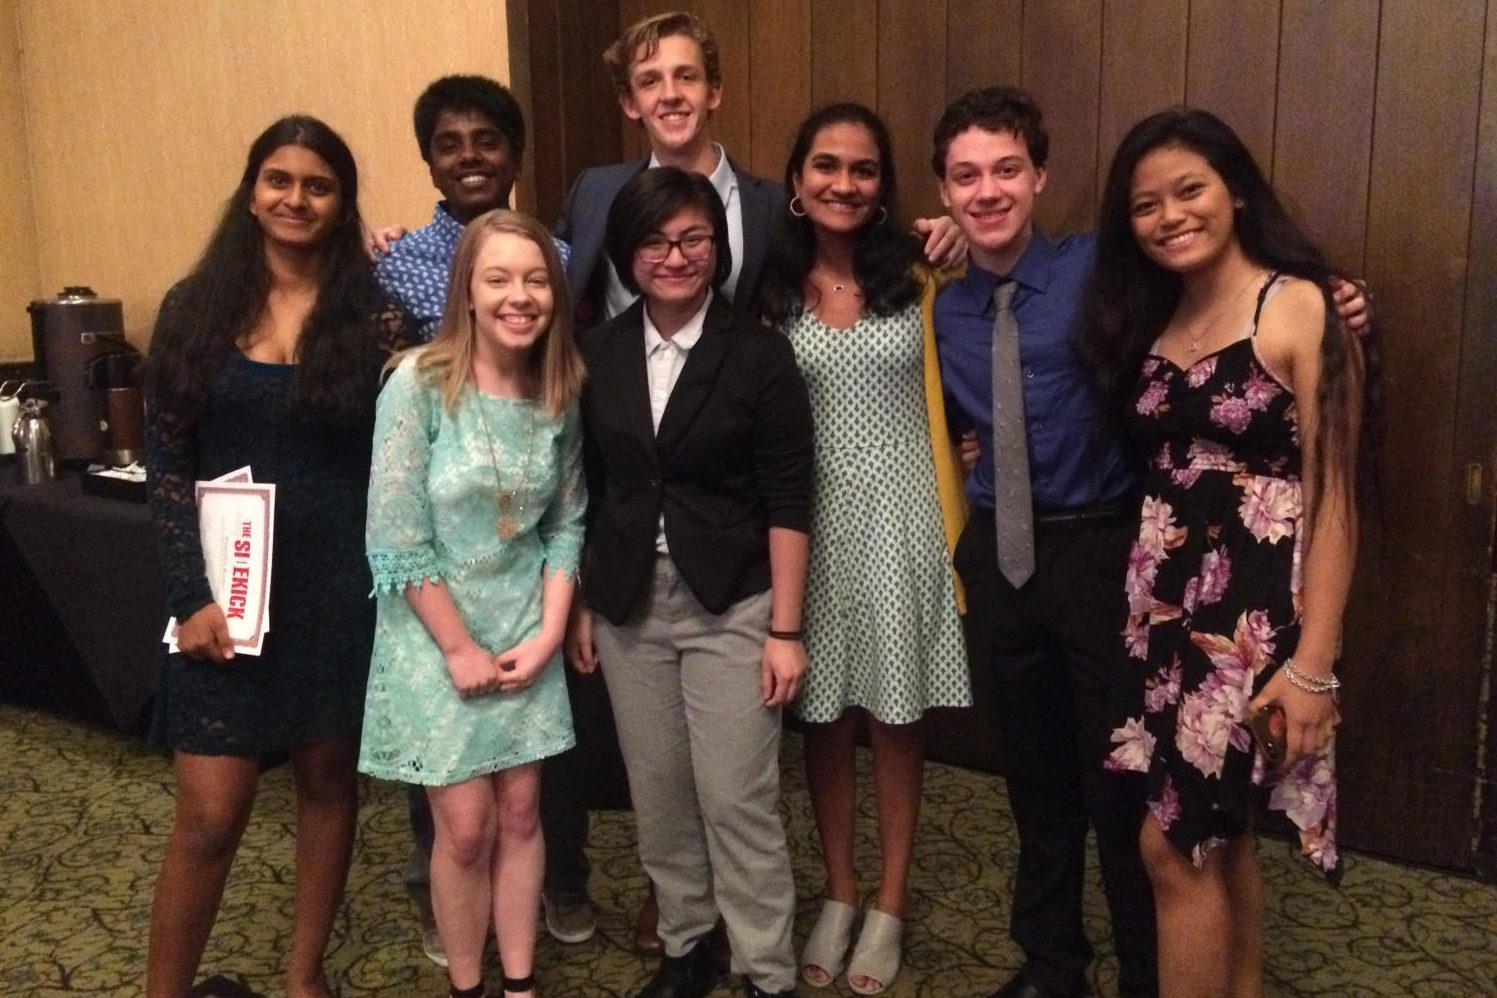 Sidekick staffers pose for a  picture at the annual Sidekick awards banquet. The Sidekick has been a big part of staff writer Pramika Kadari's life since she moved to Dallas at the beginning of the school year.